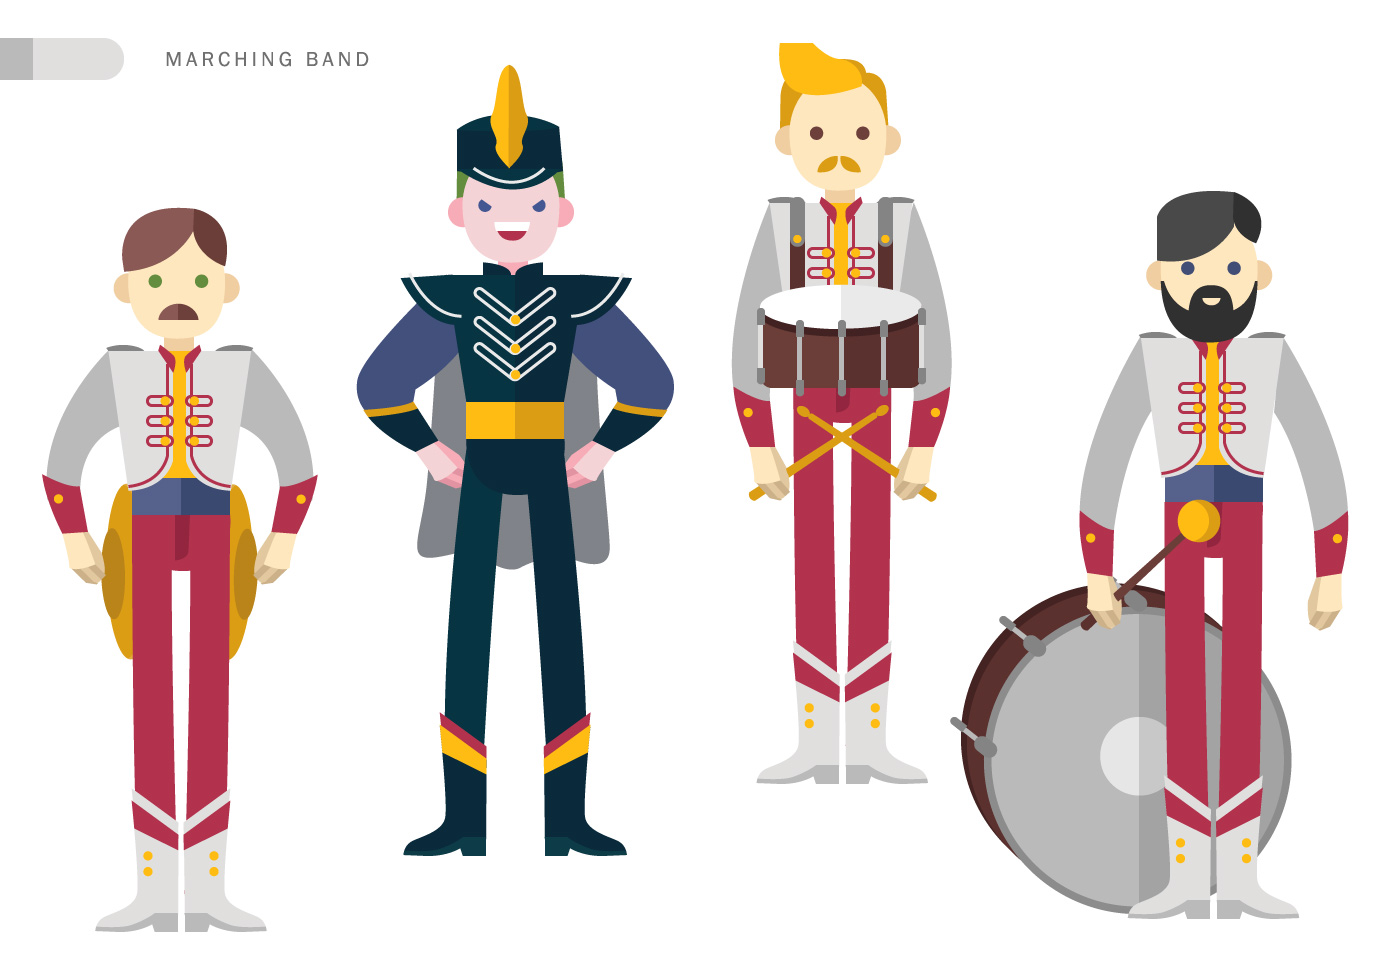 marching band squad vector flat illustration download